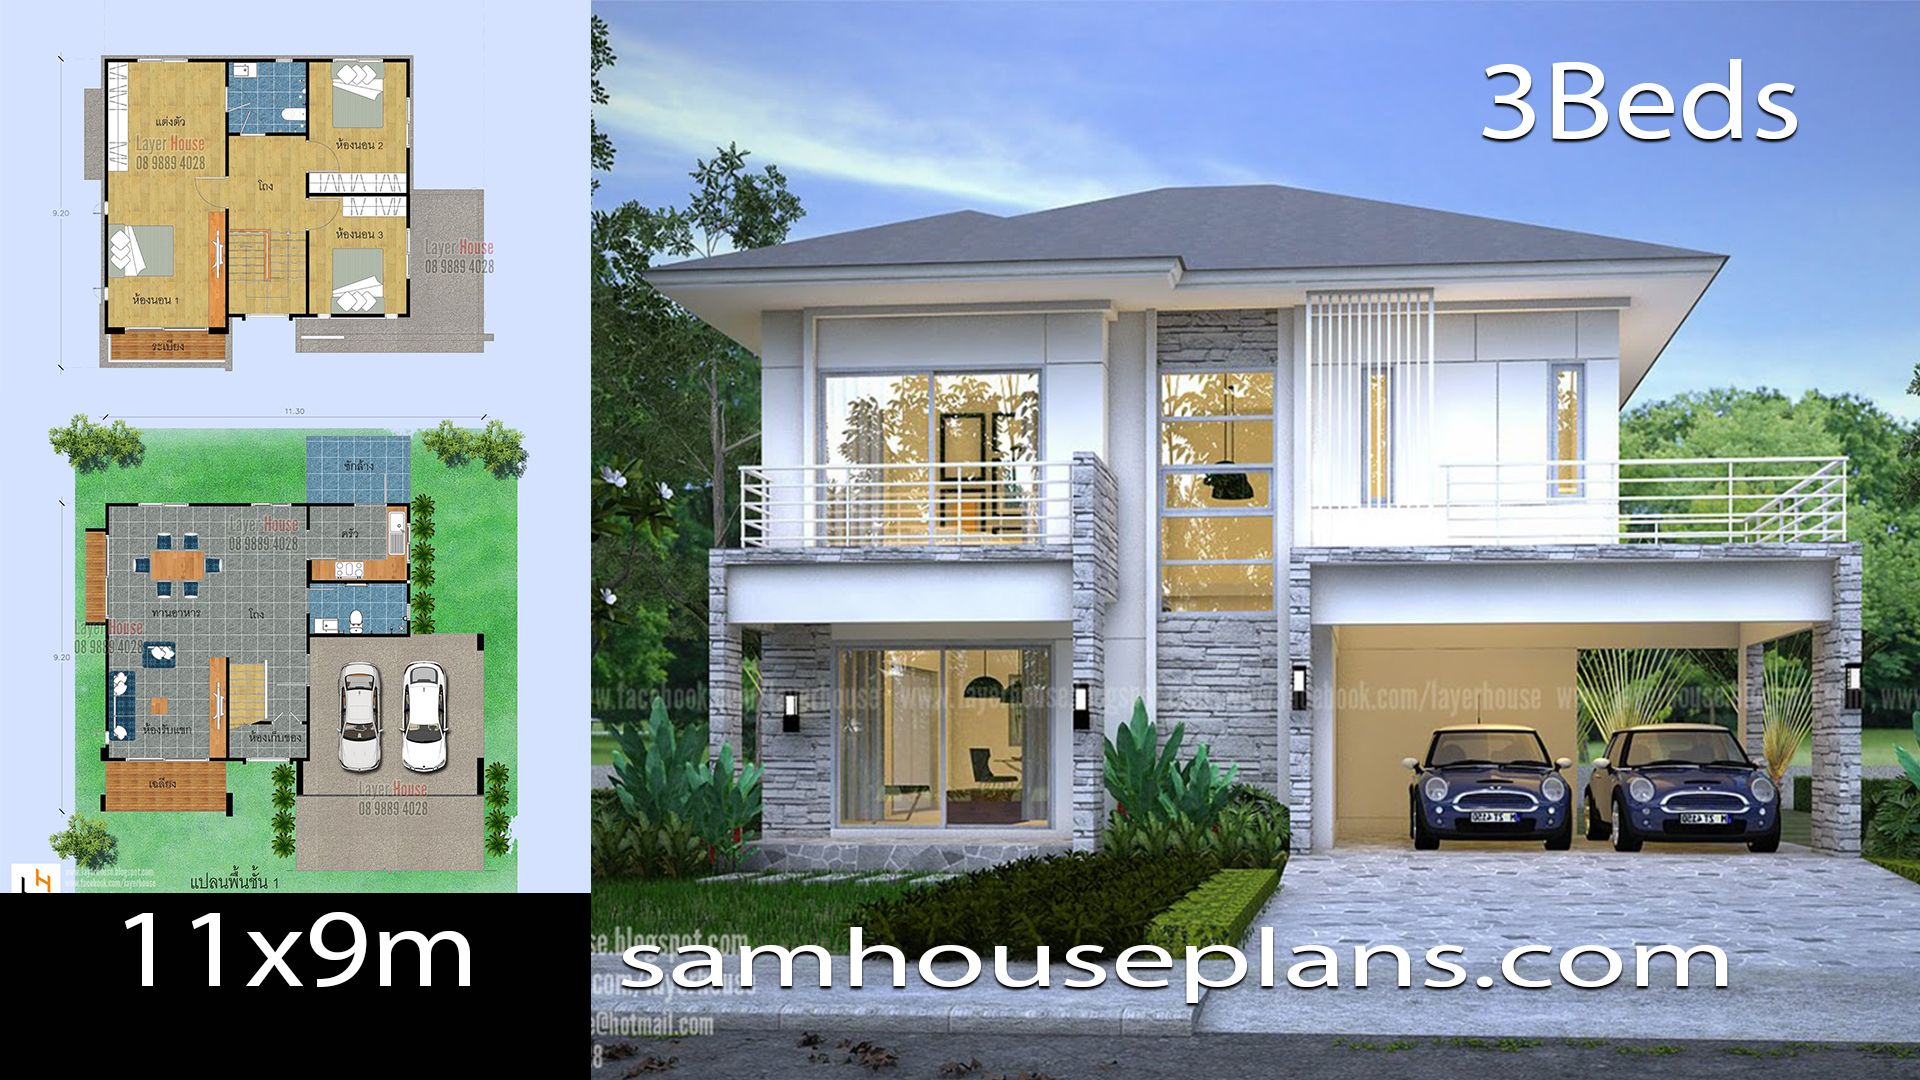 House Plans Idea 11x9m With 3 Bedrooms In 2020 House Plans Modern House Plans Two Storey House Plans